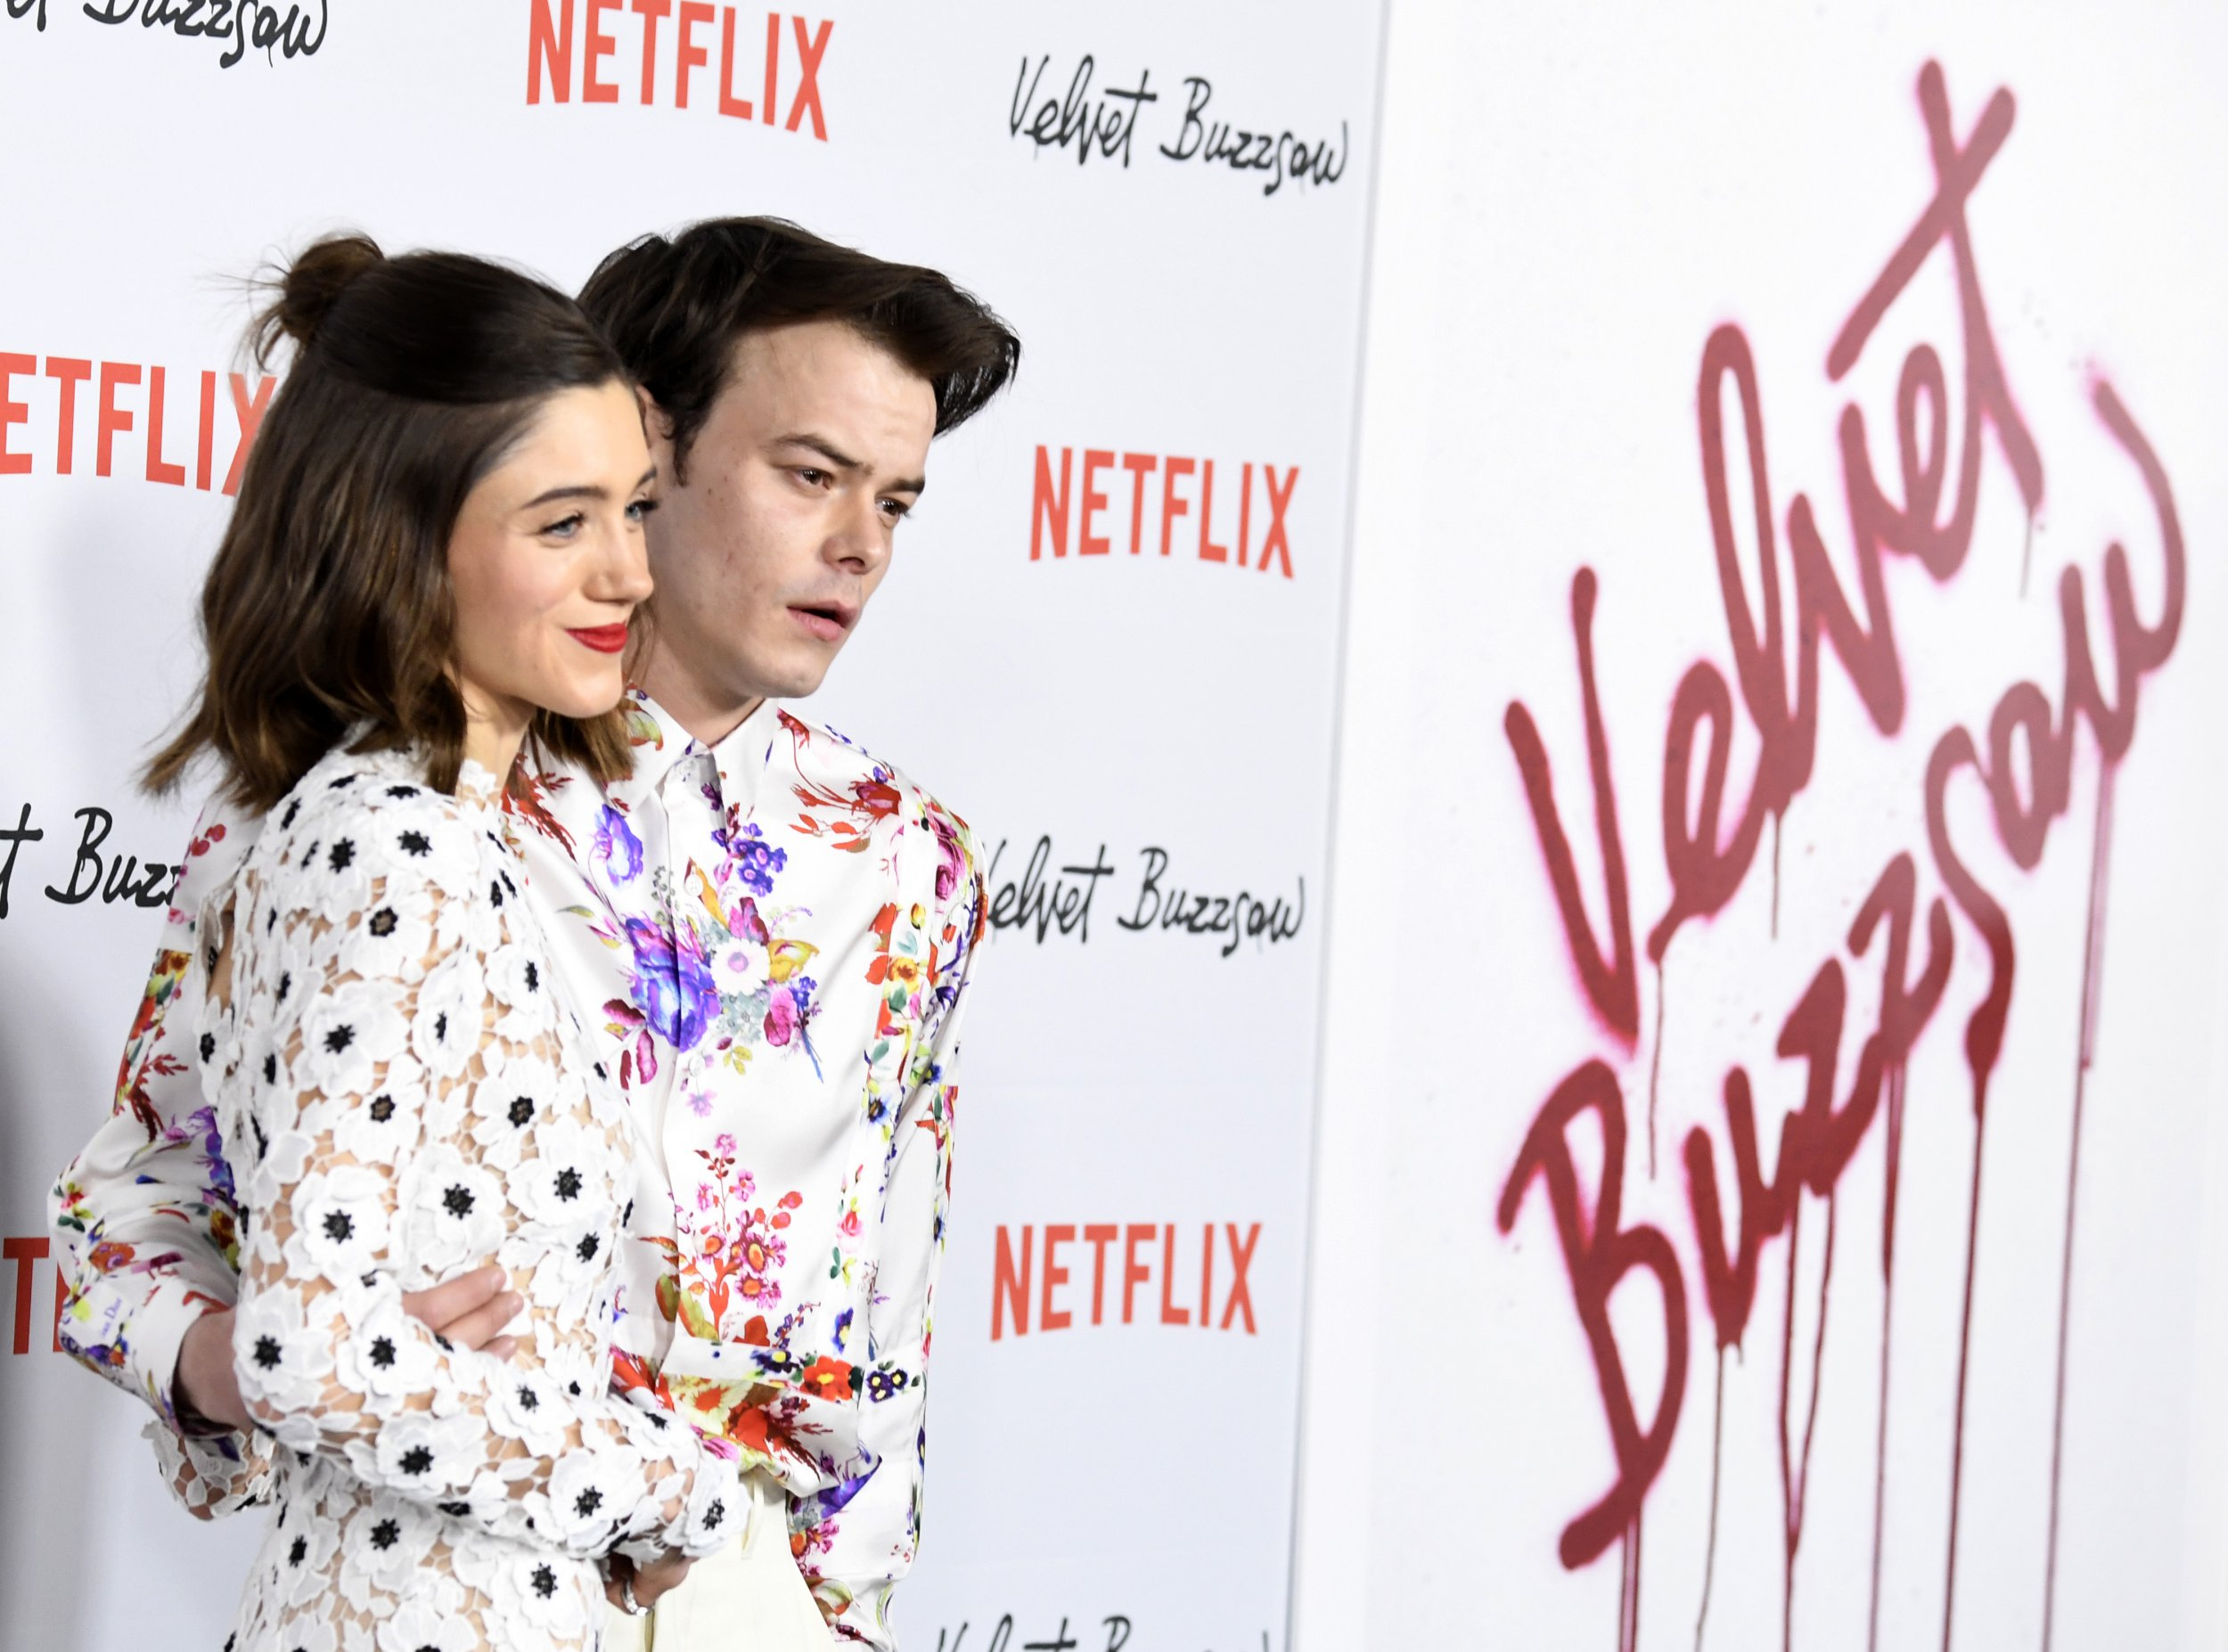 """HOLLYWOOD, CALIFORNIA - JANUARY 28: Charlie Heaton and Natalie Dyer attend the Los Angeles Premiere Screening Of """"Velvet Buzzsaw"""" at American Cinematheque's Egyptian Theatre on January 28, 2019 in Hollywood, California. (Photo by Frazer Harrison/Getty Images)"""